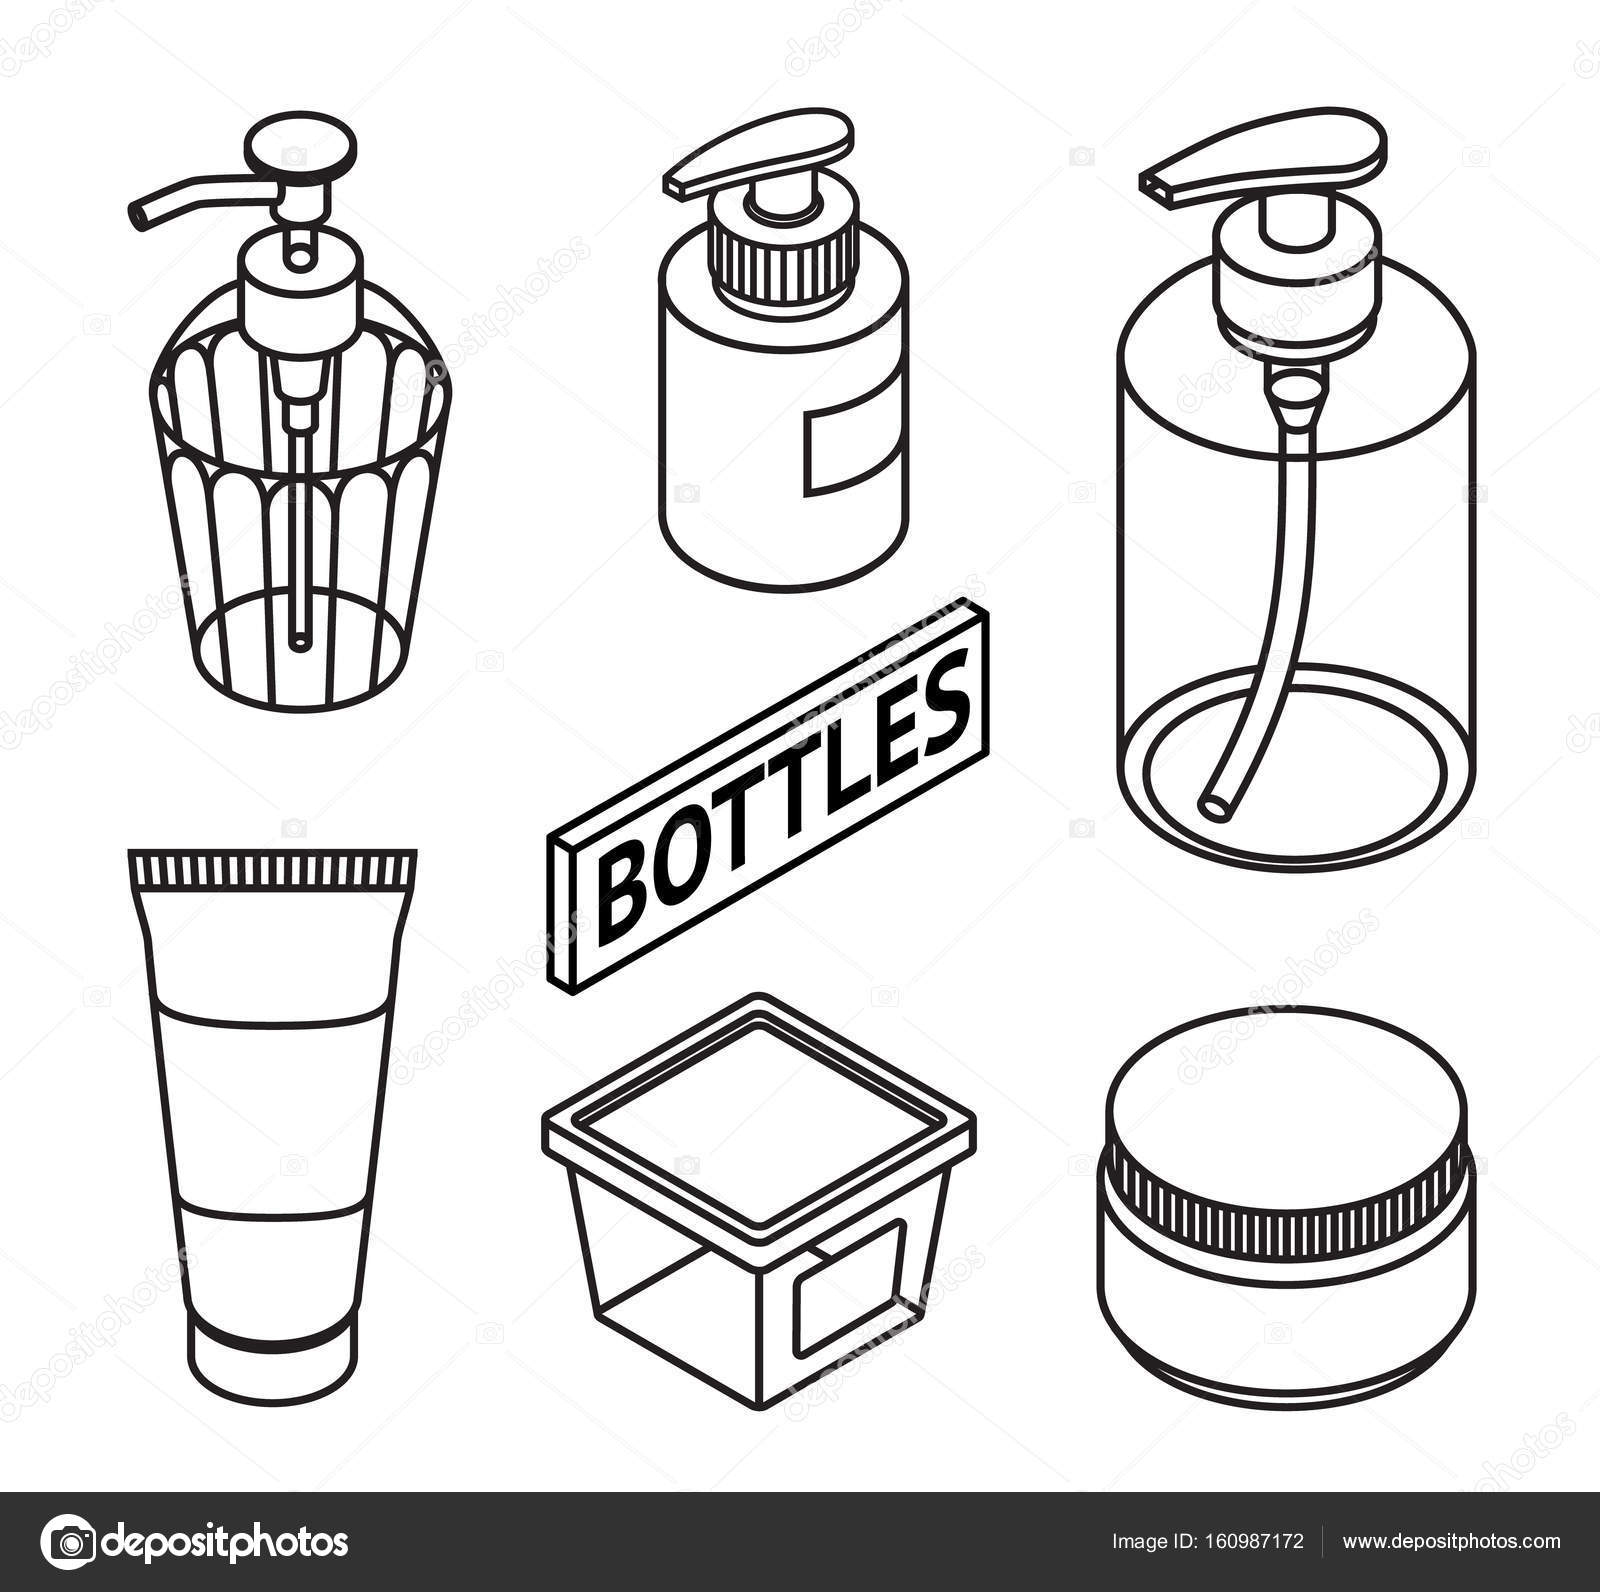 Set Of Line Style Cosmetics For Skin Care Icons Of Cosmetic Bottles And Package Bottles For